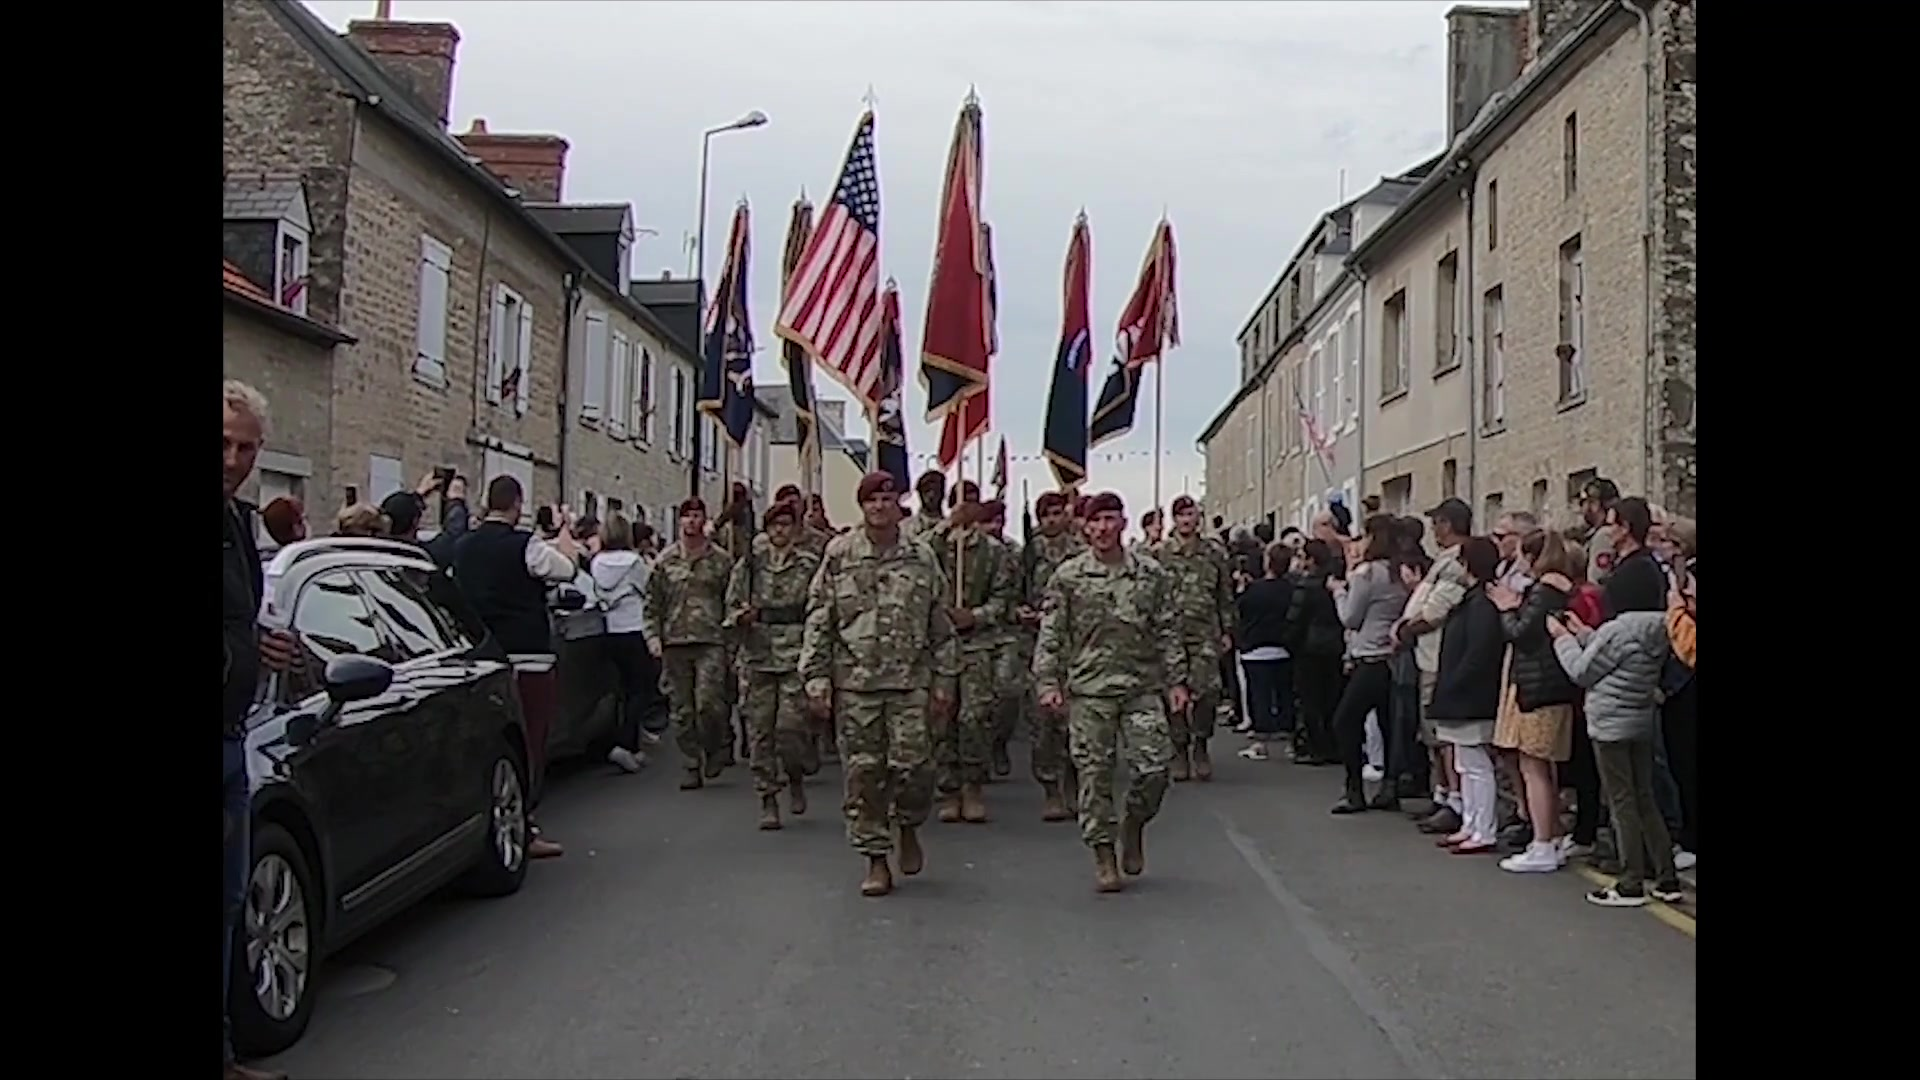 82nd Airborne Paratroopers celebrate 75th D-Day 75